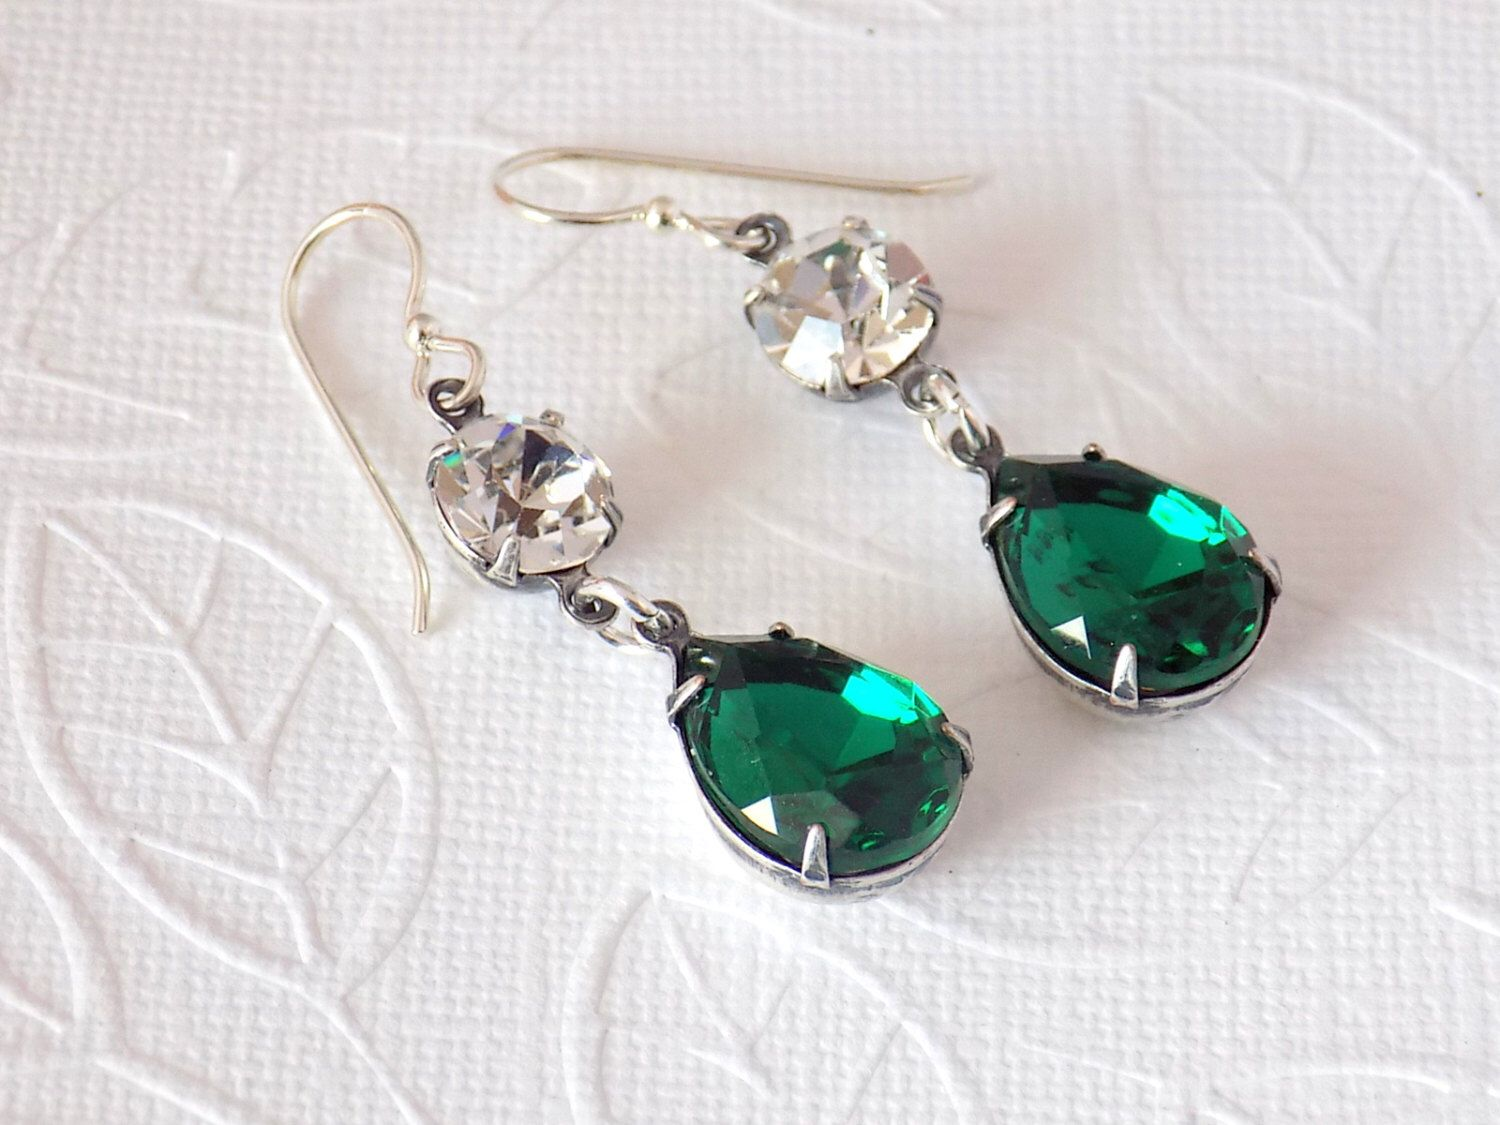 Emerald Green Earrings Swarovski Dangle Earrings Sterling Silver Earrings Edwardian Earrings Victorian Earrings Downton Abbey Jewelry by TreasuresofJewels on Etsy https://www.etsy.com/listing/265725193/emerald-green-earrings-swarovski-dangle